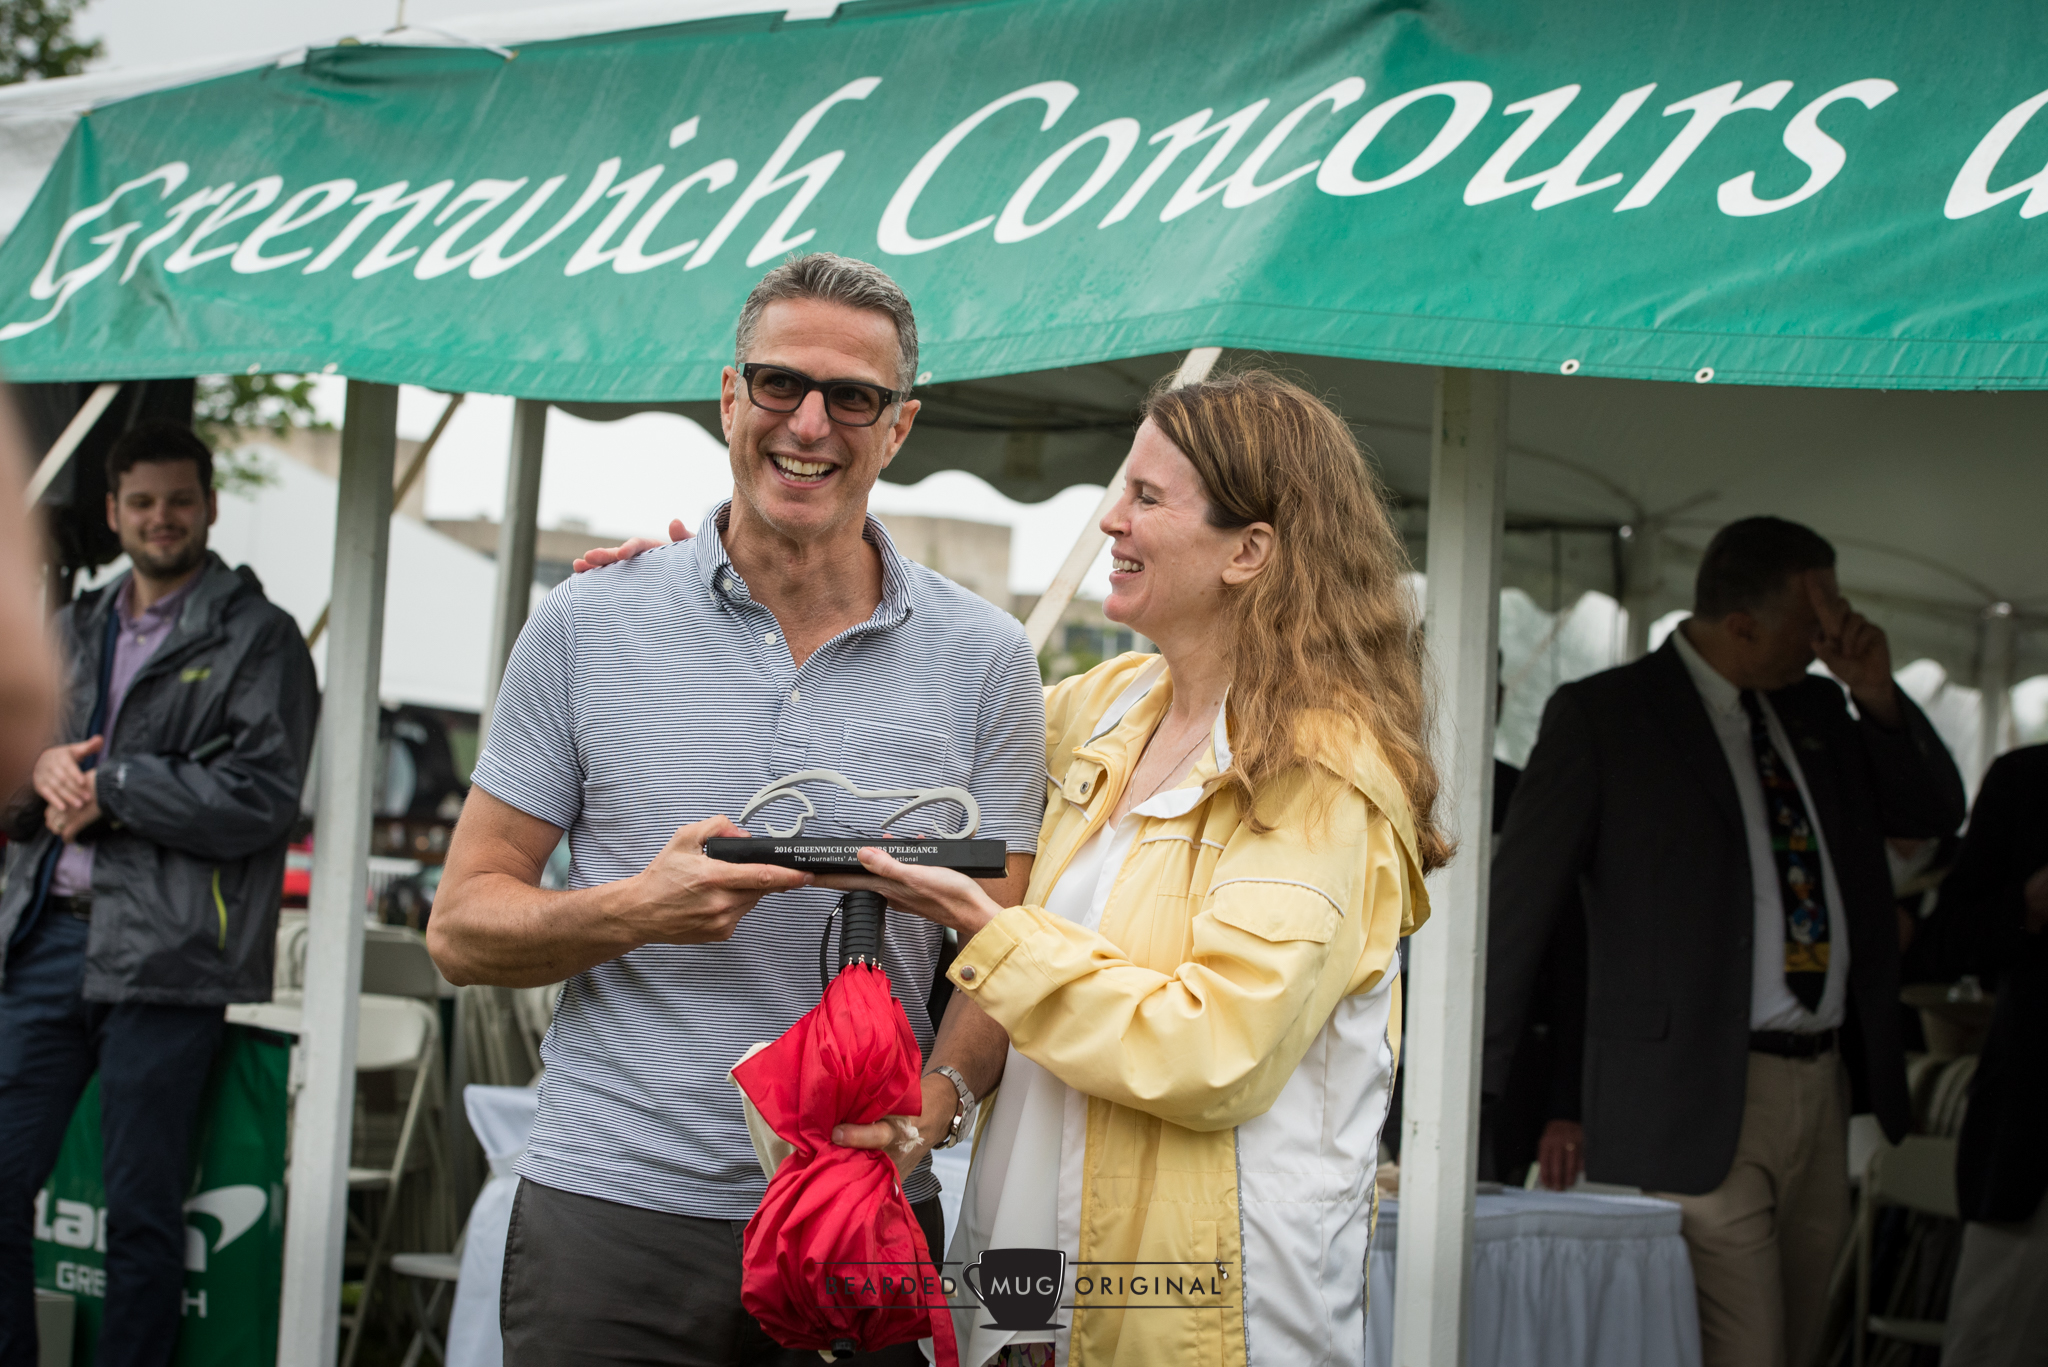 Mary Wennerstrom shares a laugh with double-fisting winner Phil Toledano, who brought home the Journalists' Award for his 1980 Porsche 924 Carerra GTS Clubsport Coupe and the Homologation Special honor for his 1982 Lancia 037.